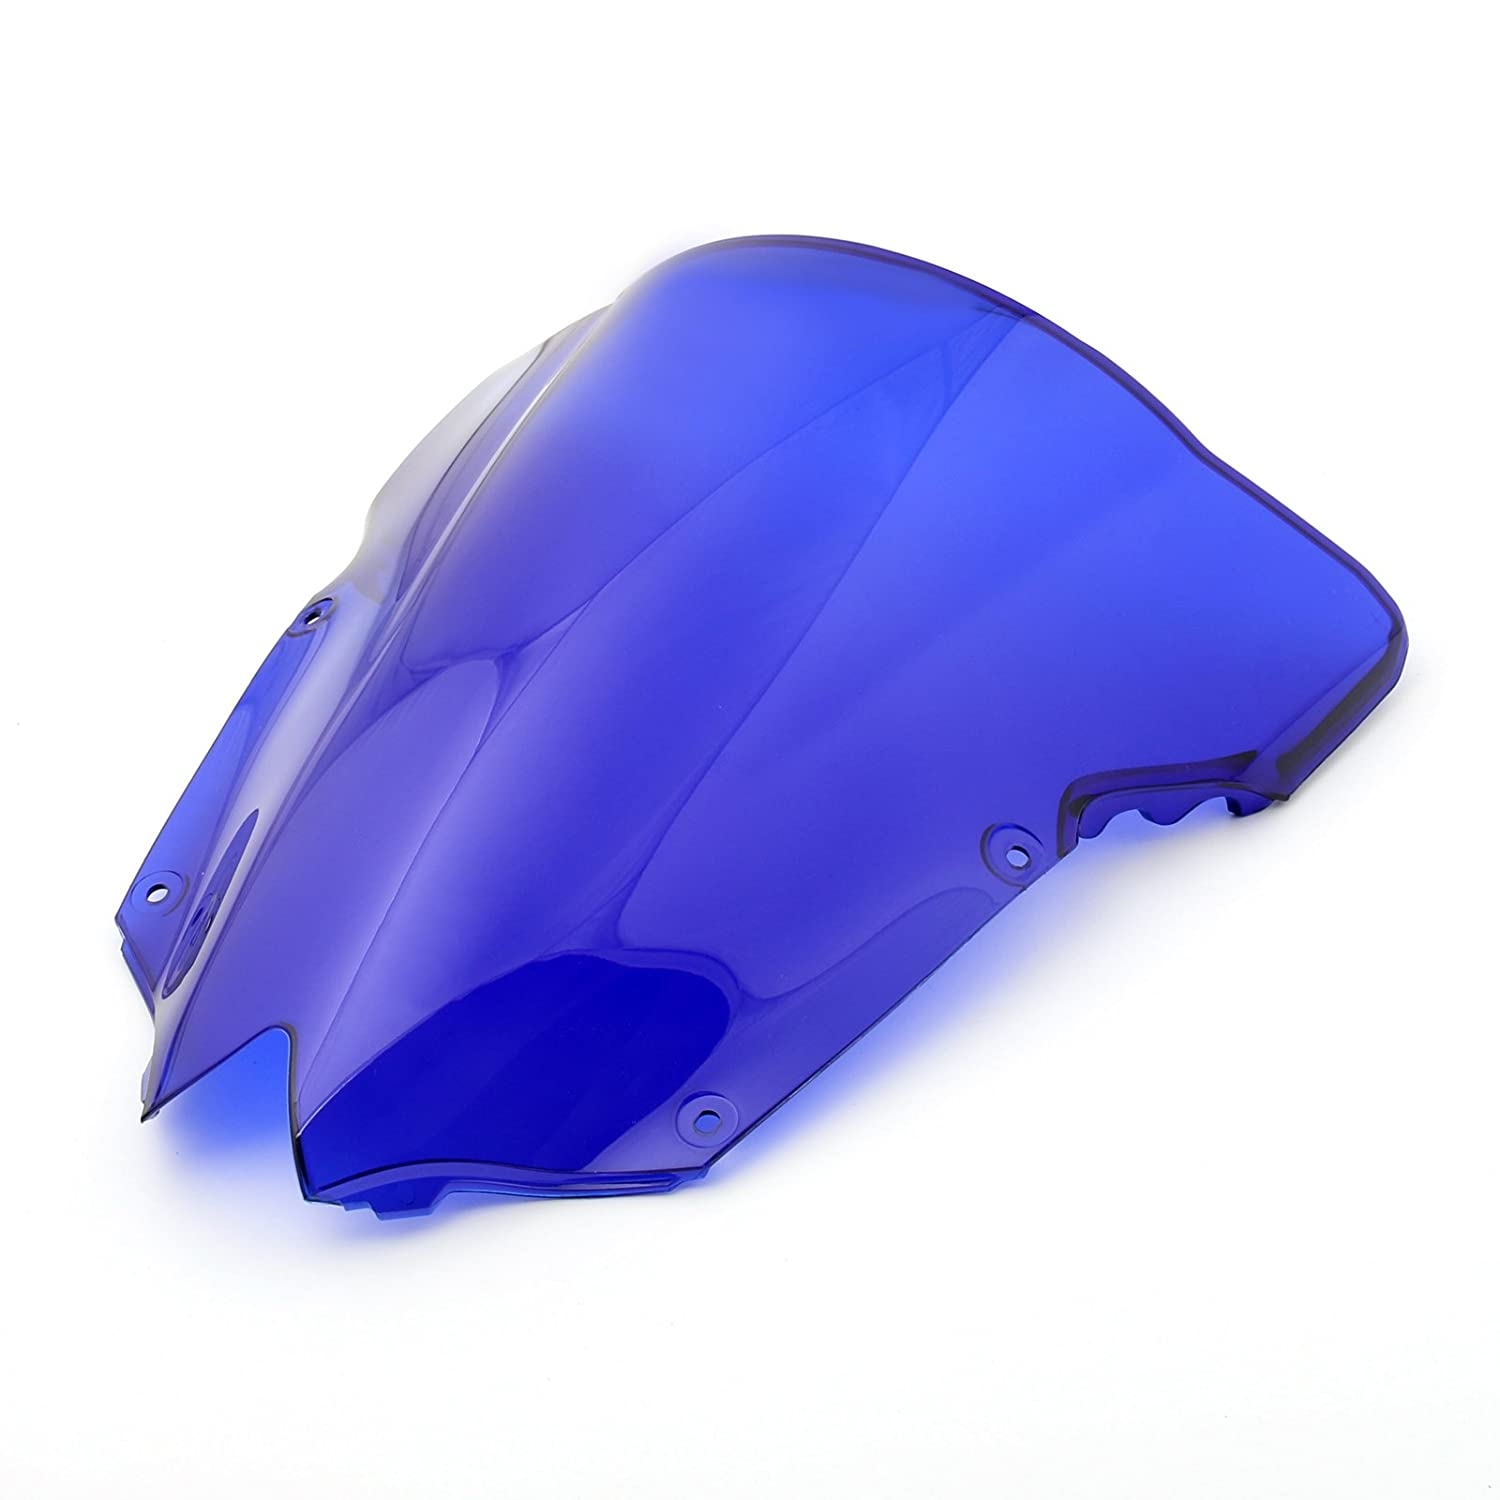 Areyourshop Windshield Windscreen Double Bubble For Yamaha YZF R6 600 2008-2015 Clear